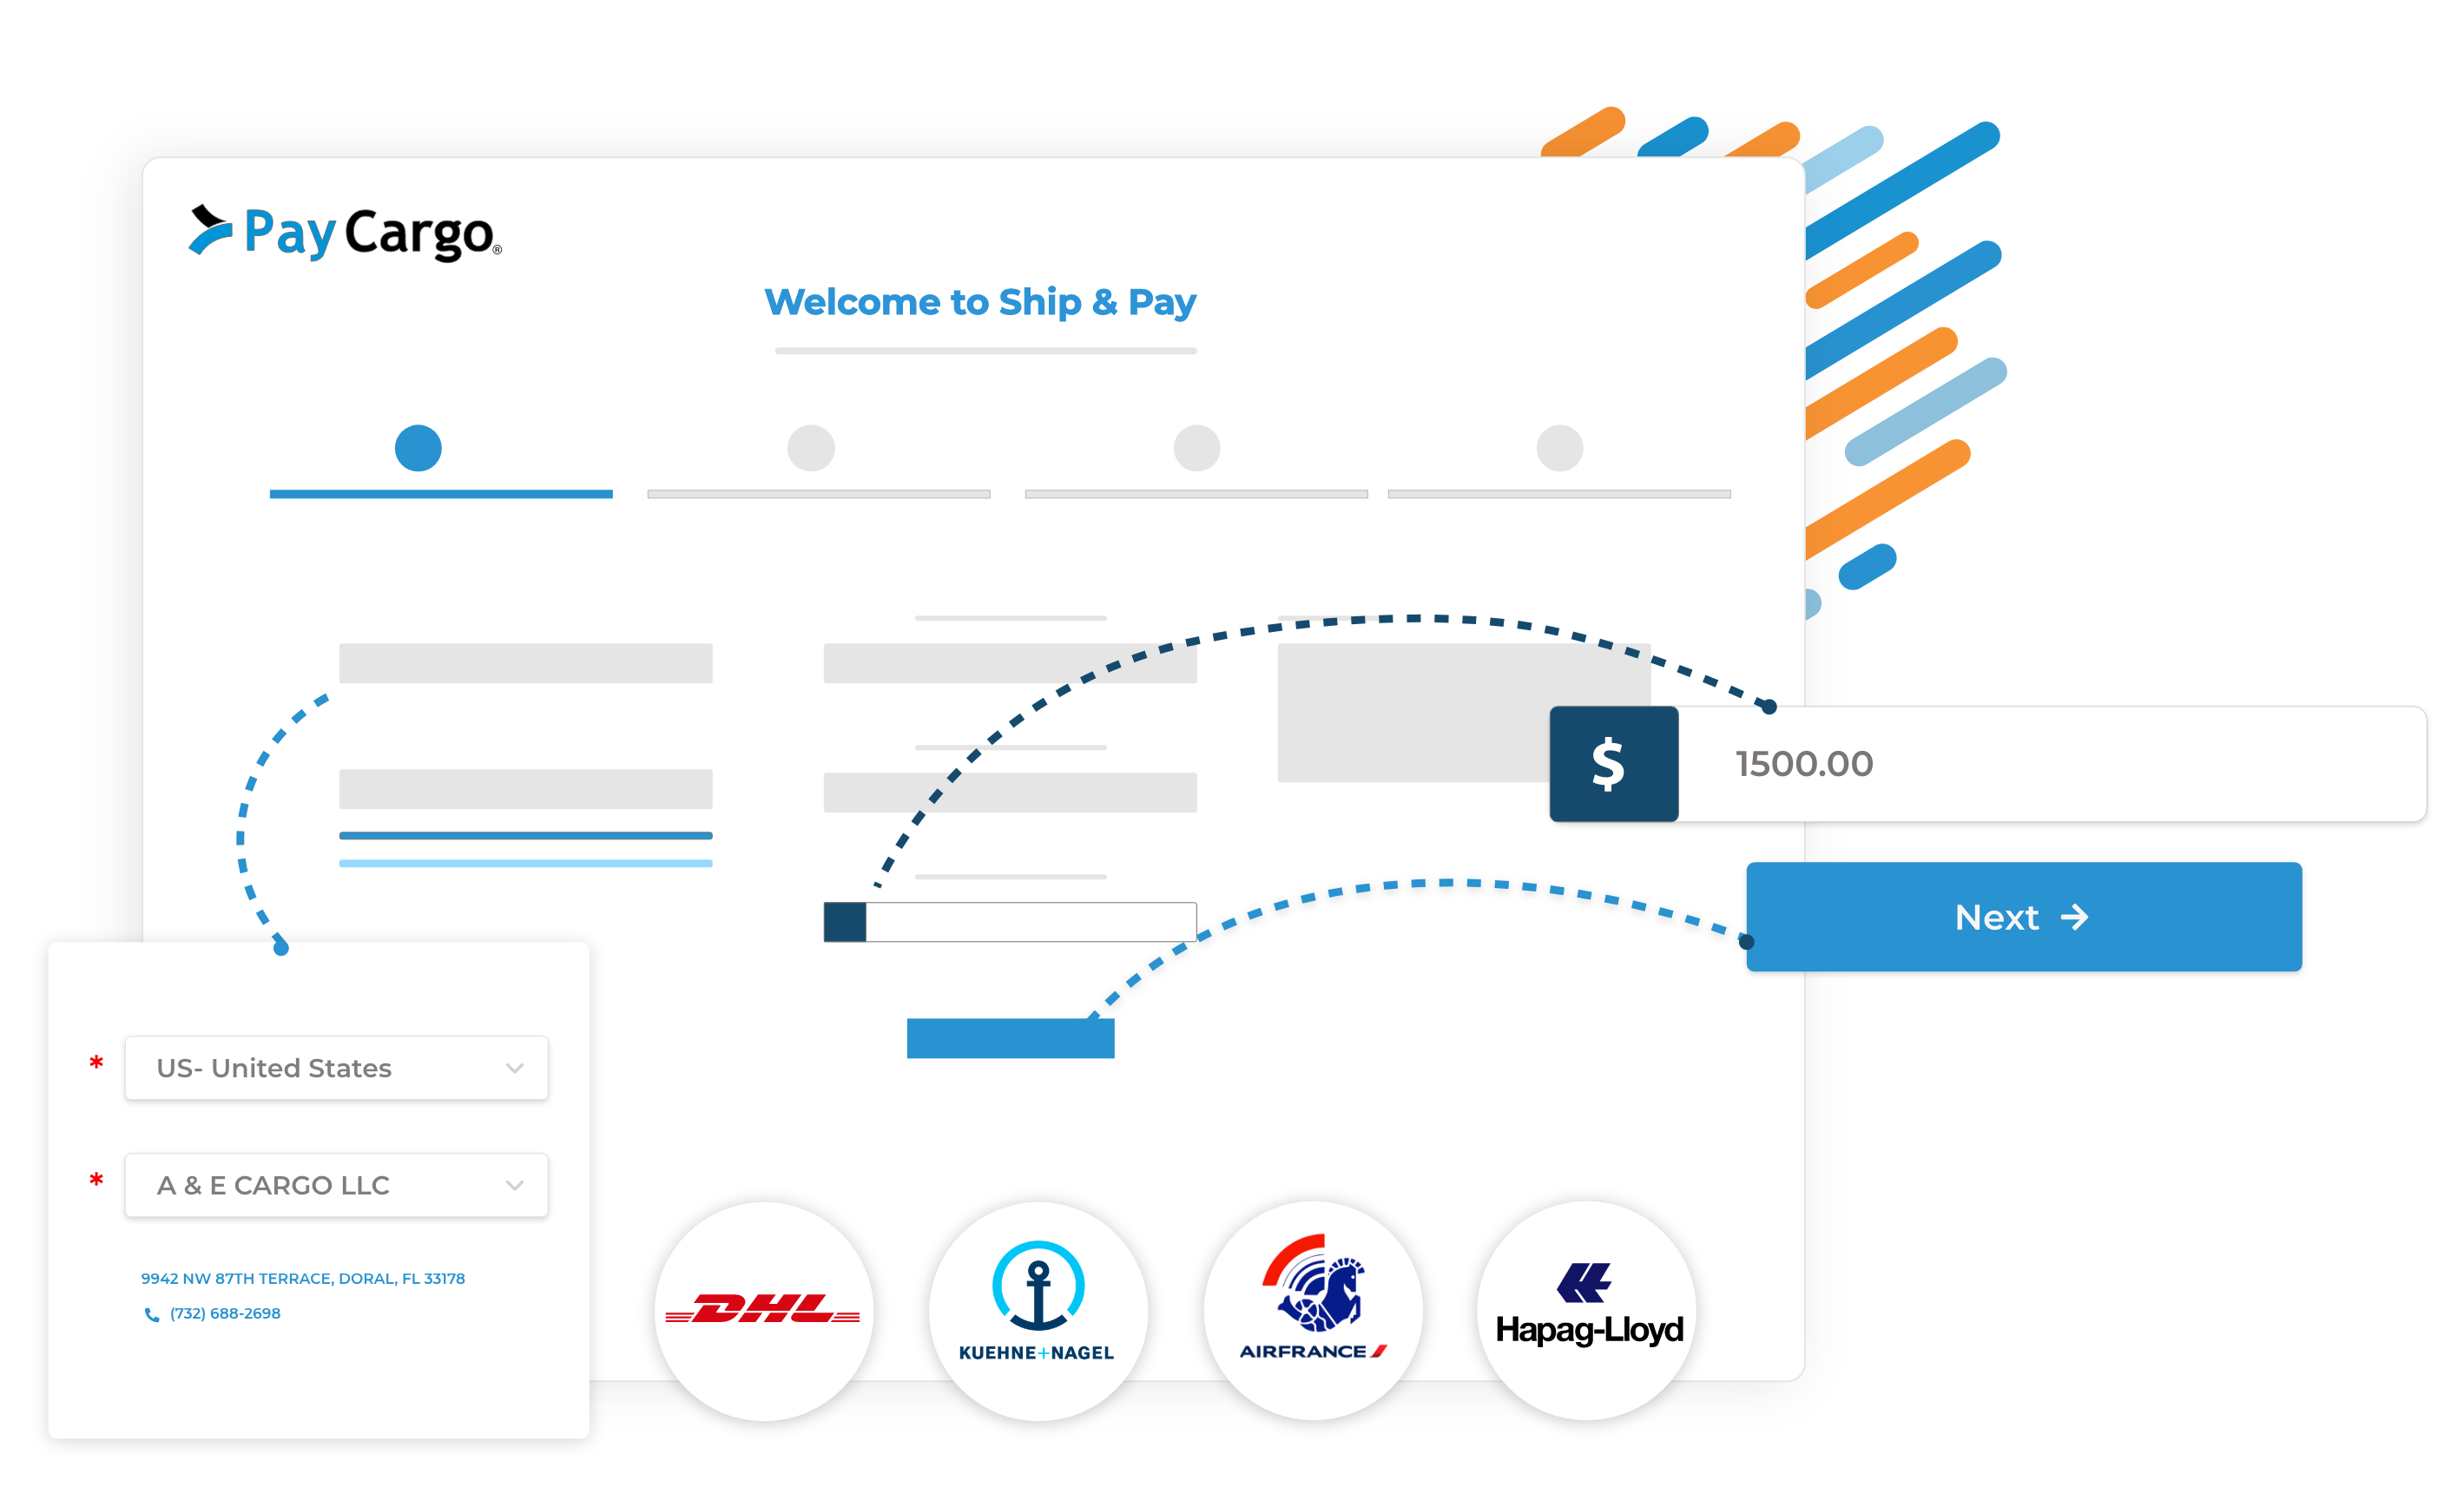 paycargo ship and pay